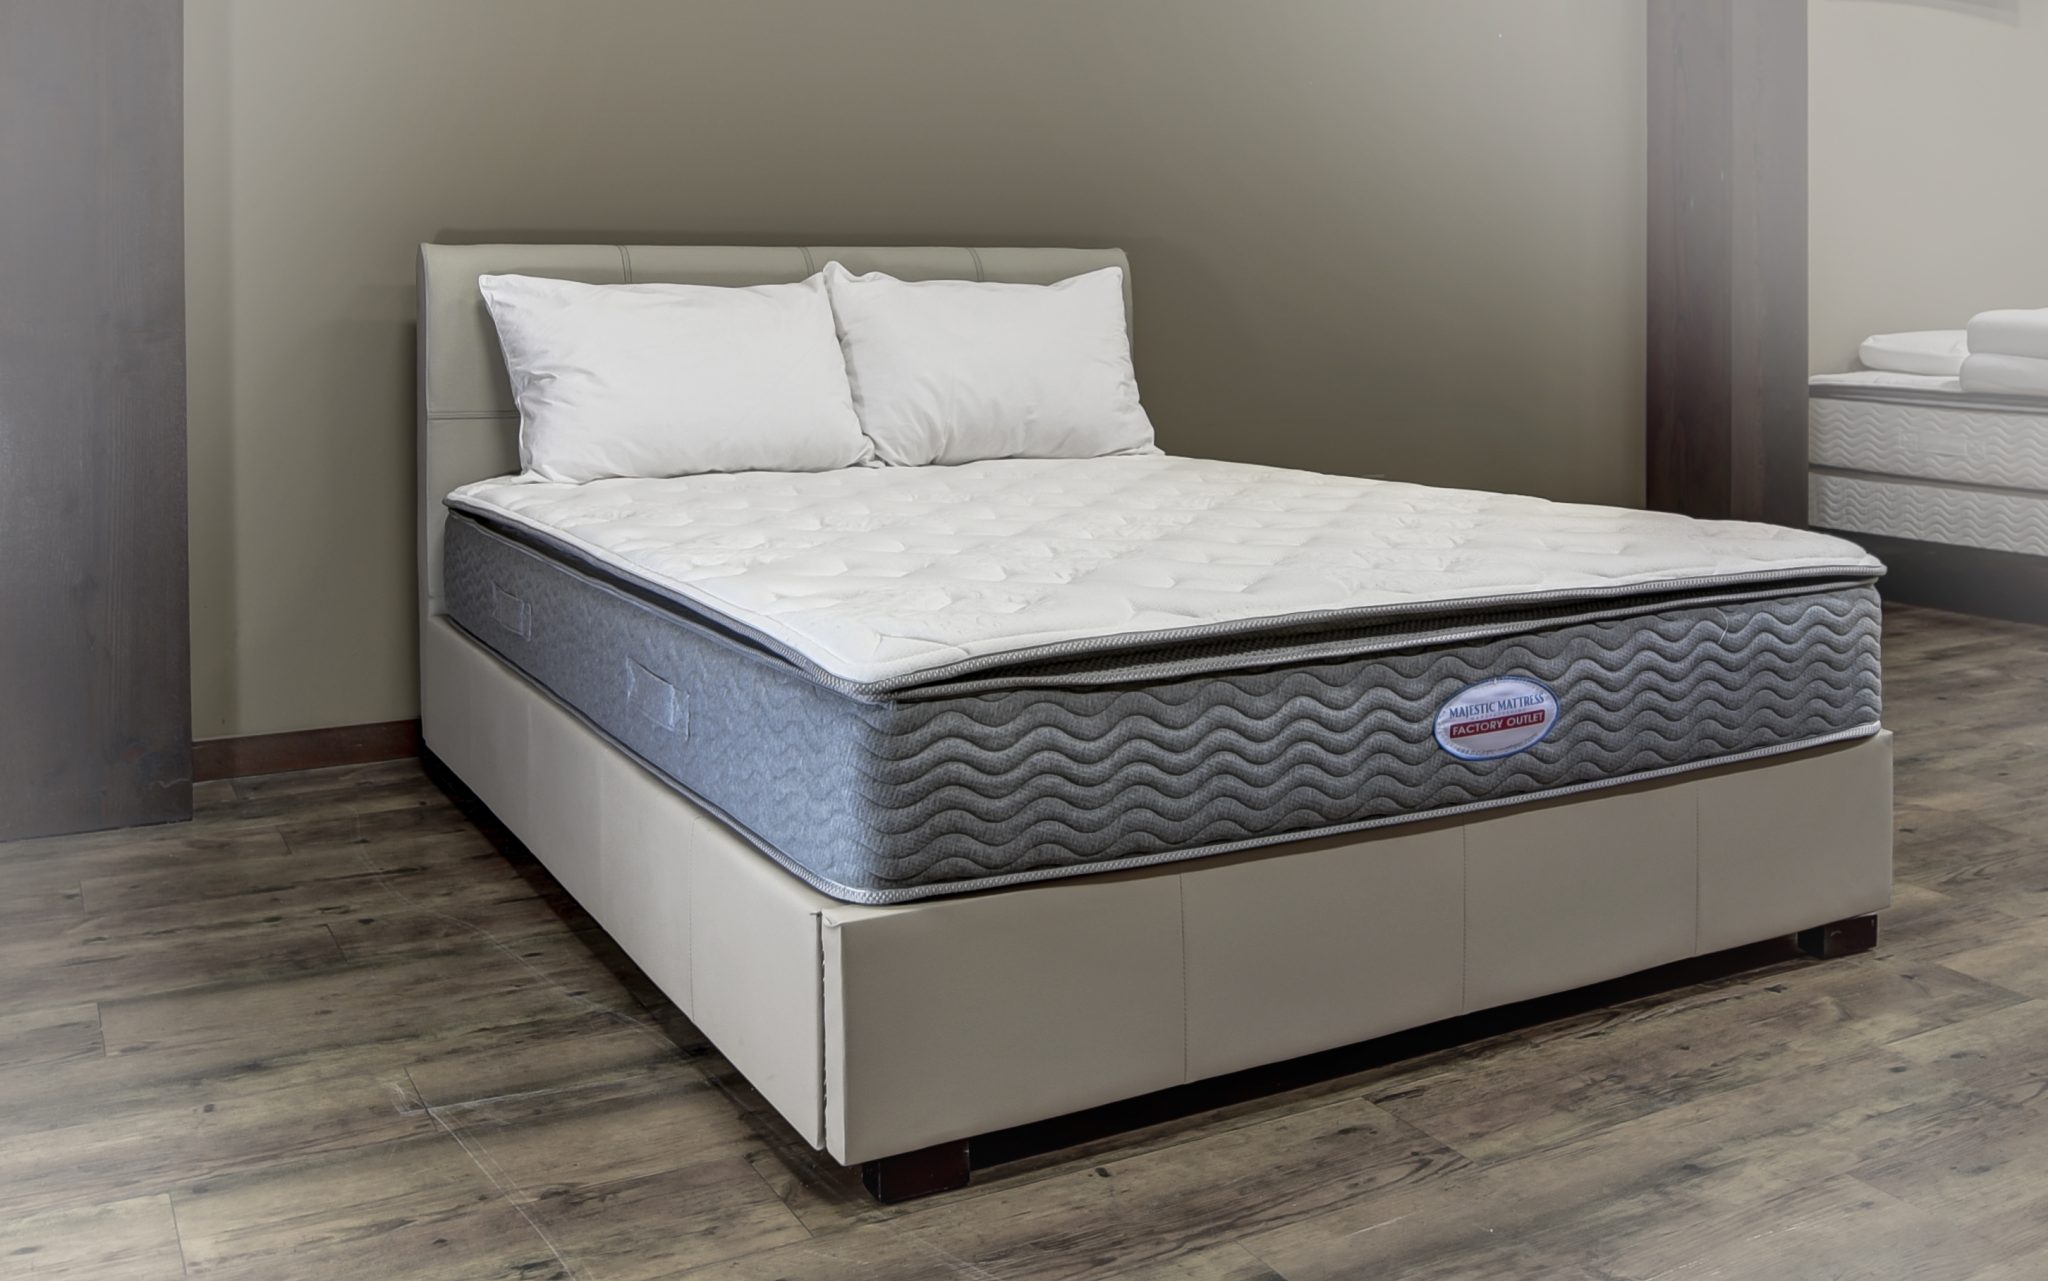 best pillow or cheap and types price pad of box size cover new novaform queen memory mattresses inch twin double very spring top gel foam affordable king sale serta for delivery topper set latex mattress discount frame